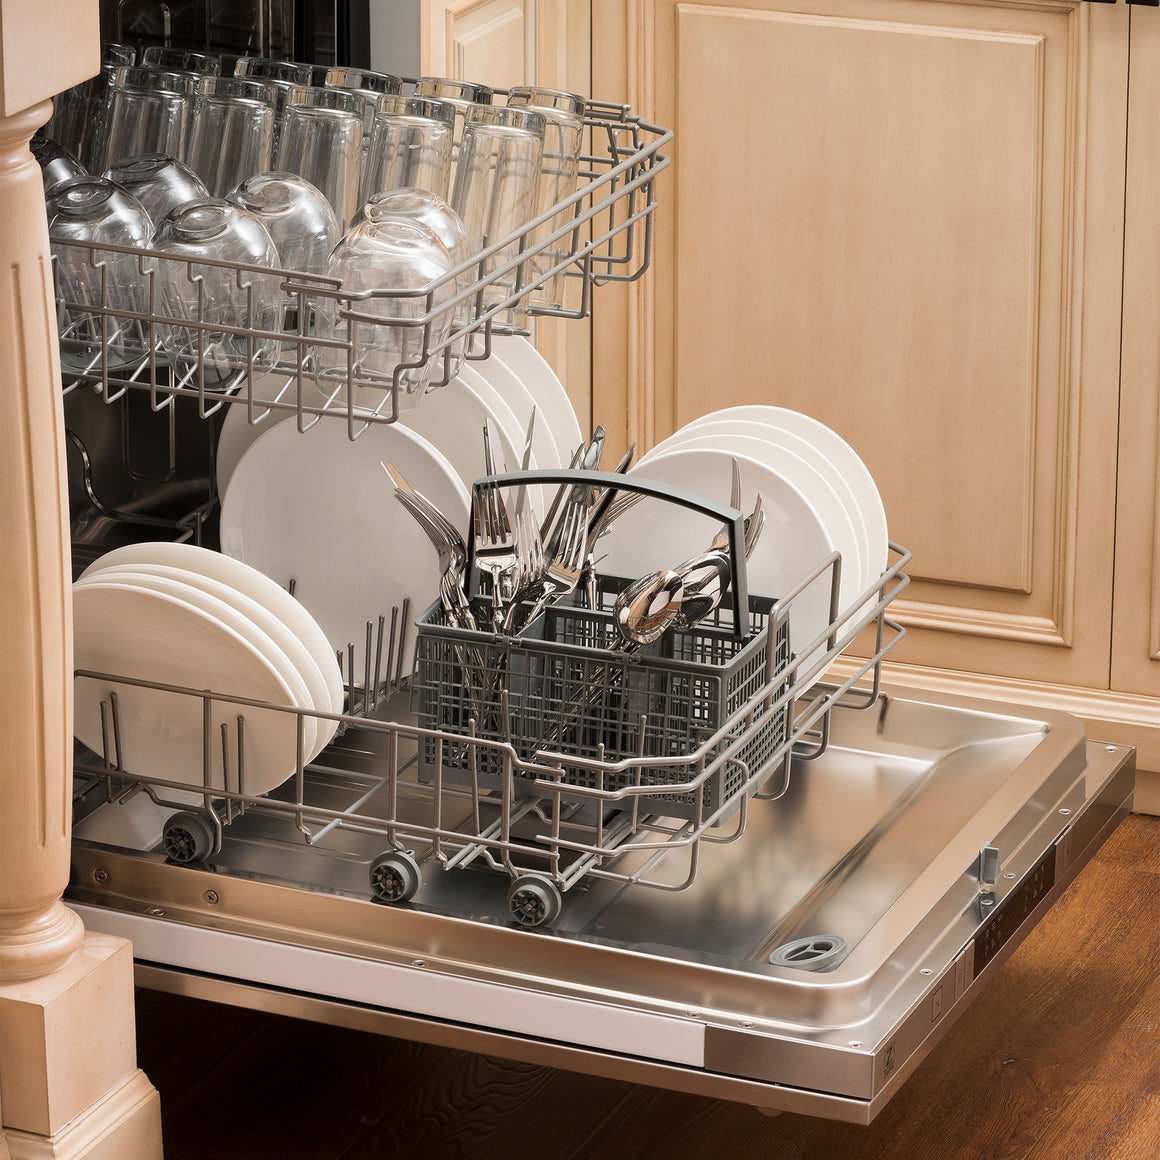 "ZLINE 24"" Top Control Dishwasher, Stainless Tub, DW-304-H-24"